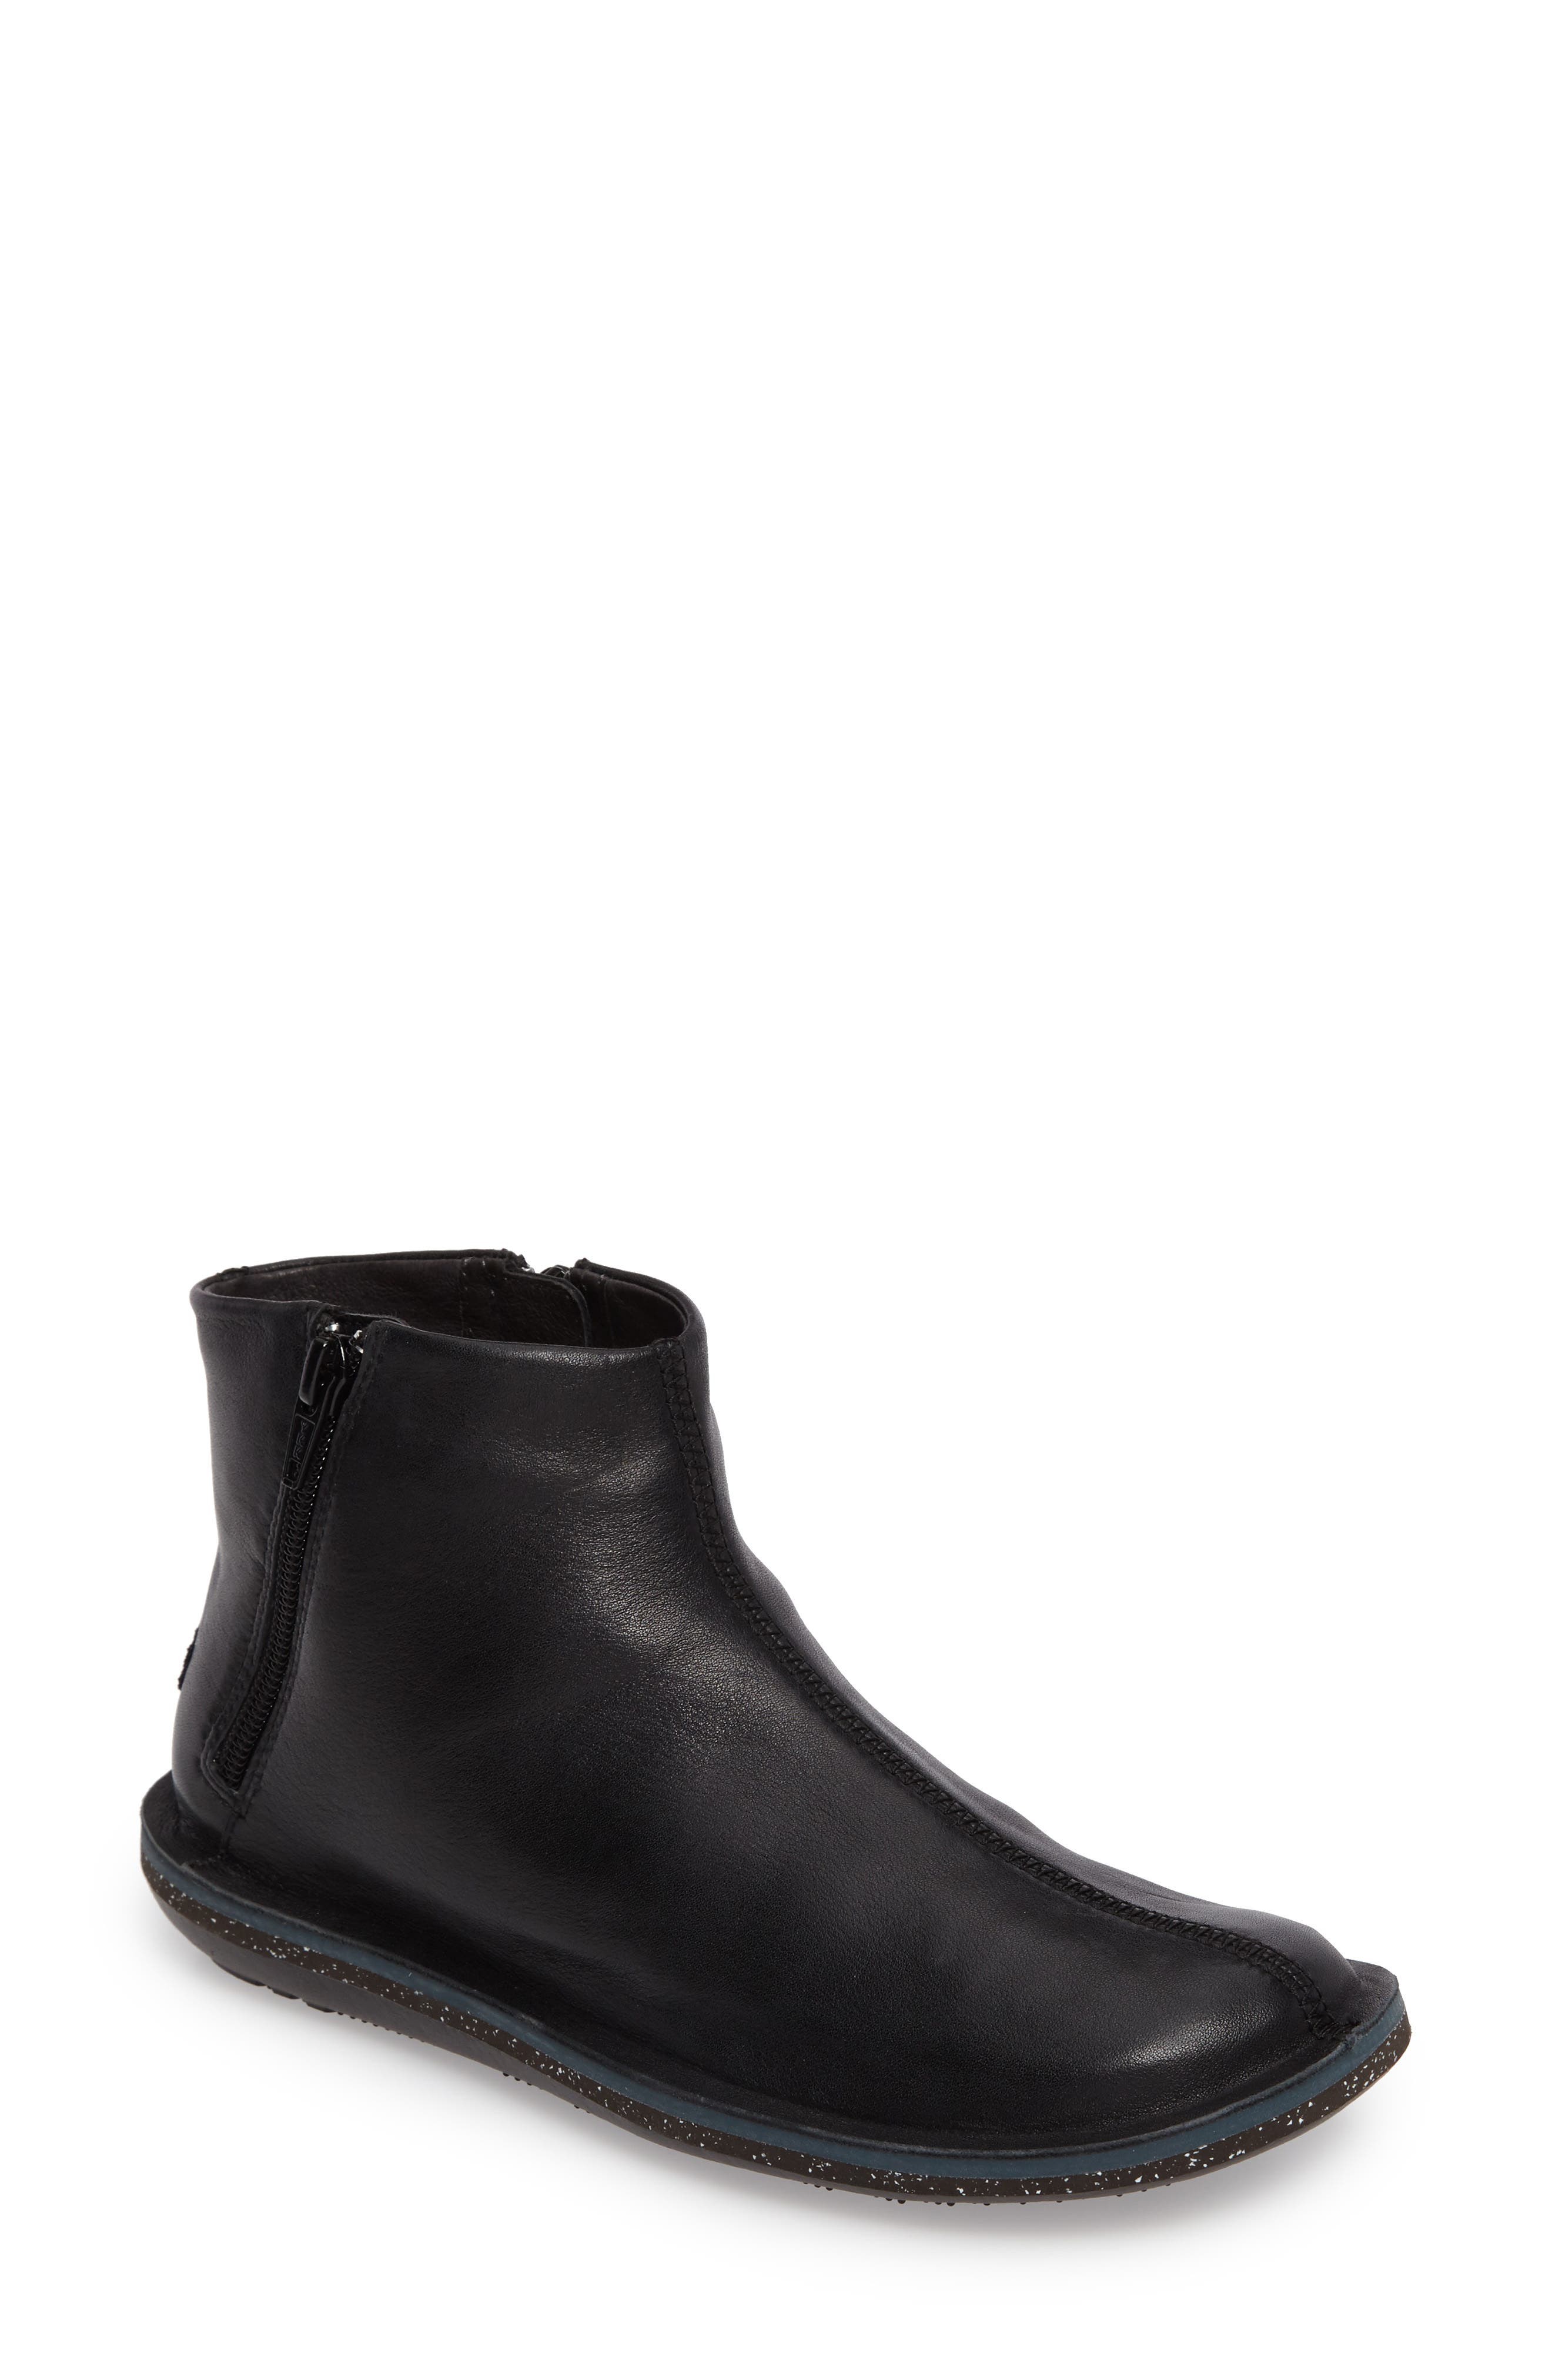 'Beetle' Ankle Bootie,                         Main,                         color, 005